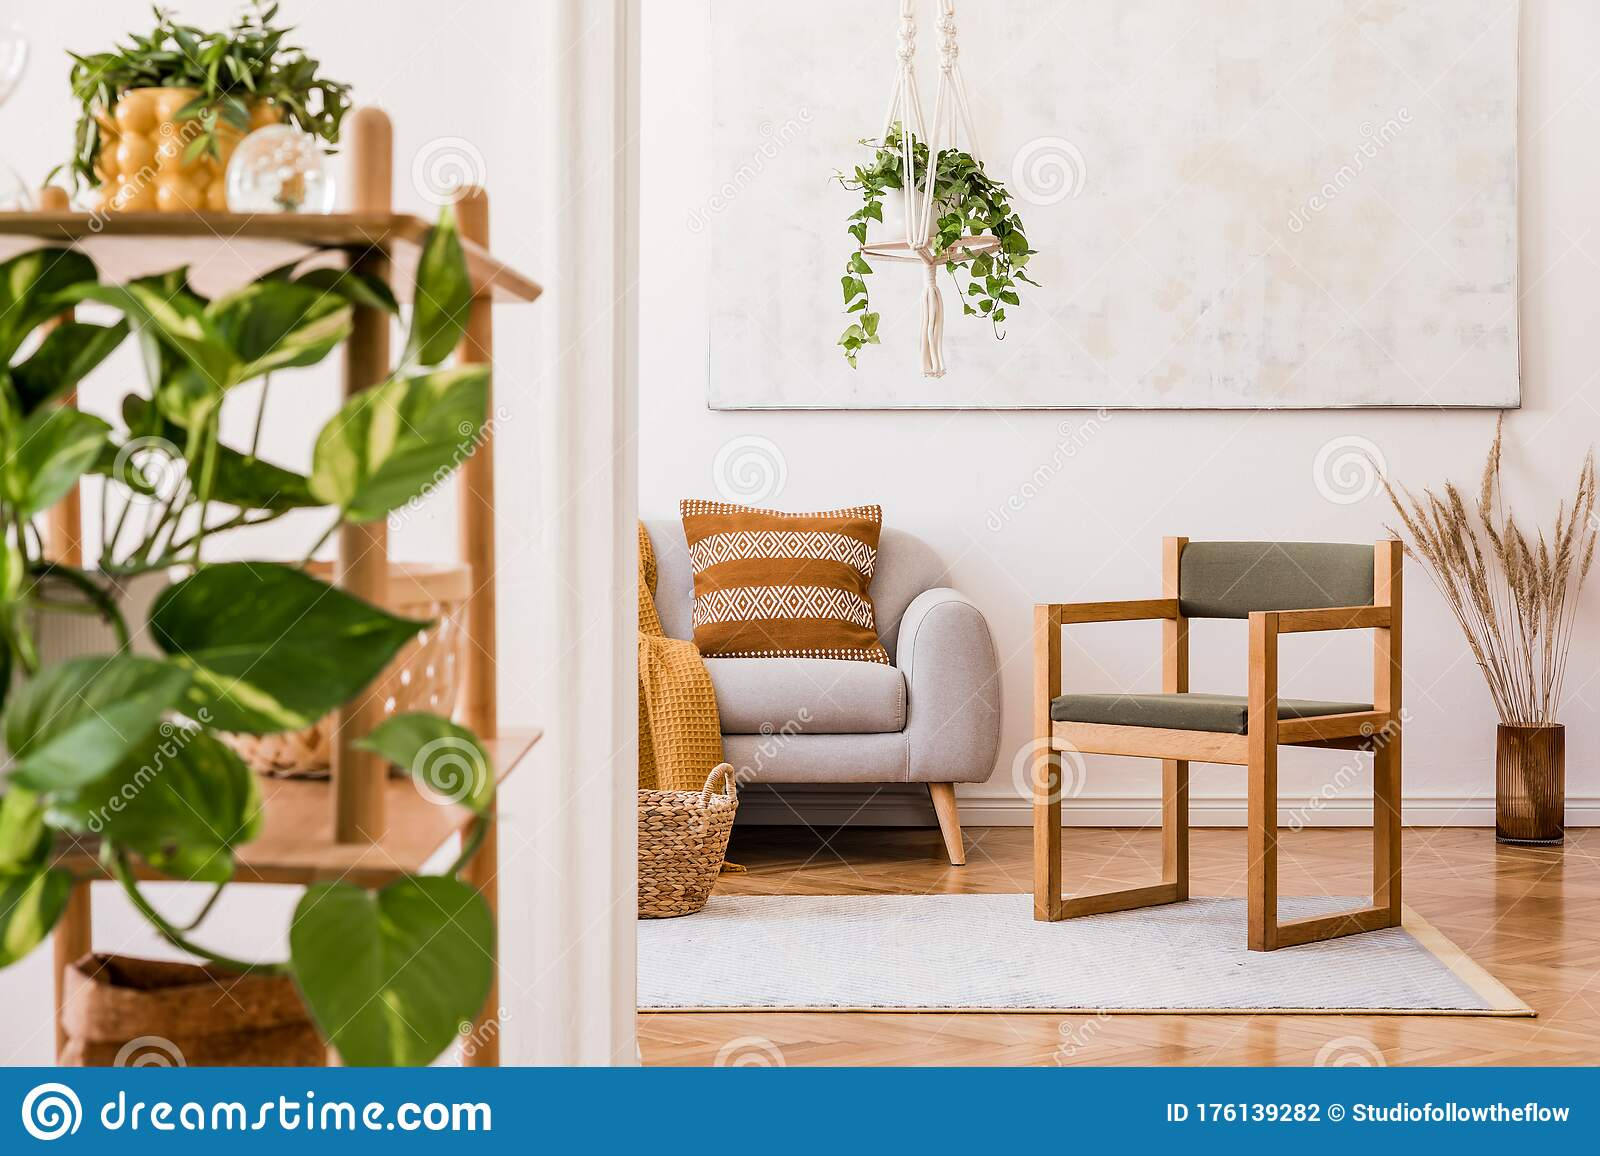 Modern Boho Interior Of Living Room At Cozy Apartment With Grey Sofa And Wooden Armchair Stock Photo Image Of Hanging Arrangement 176139282